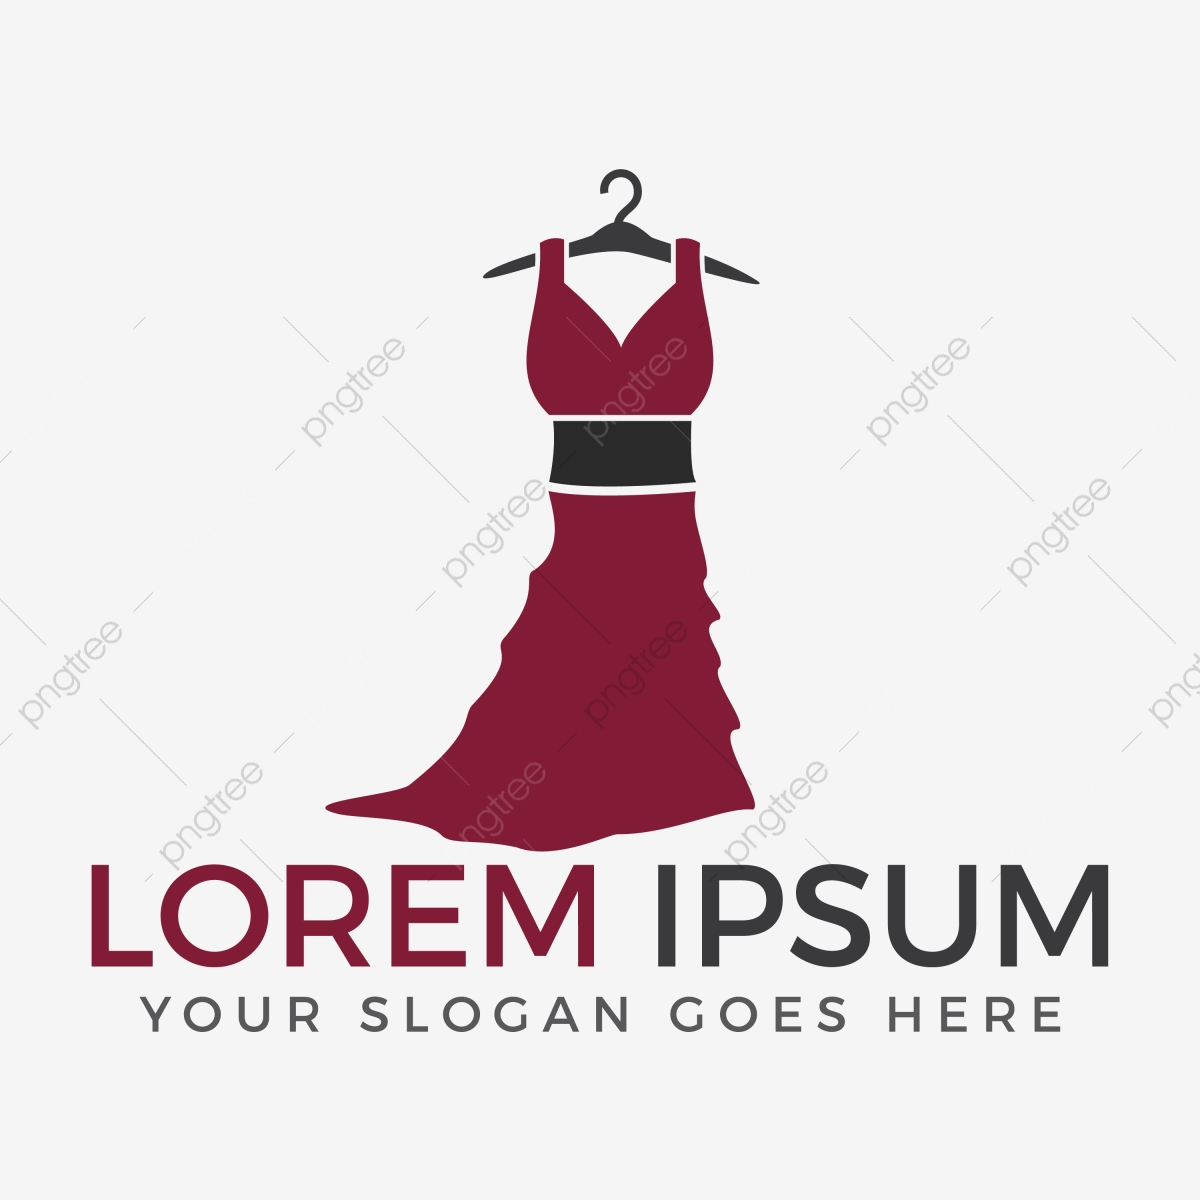 Woman Fashion Logo Design Fashion Woman Model With Boutique Logo.